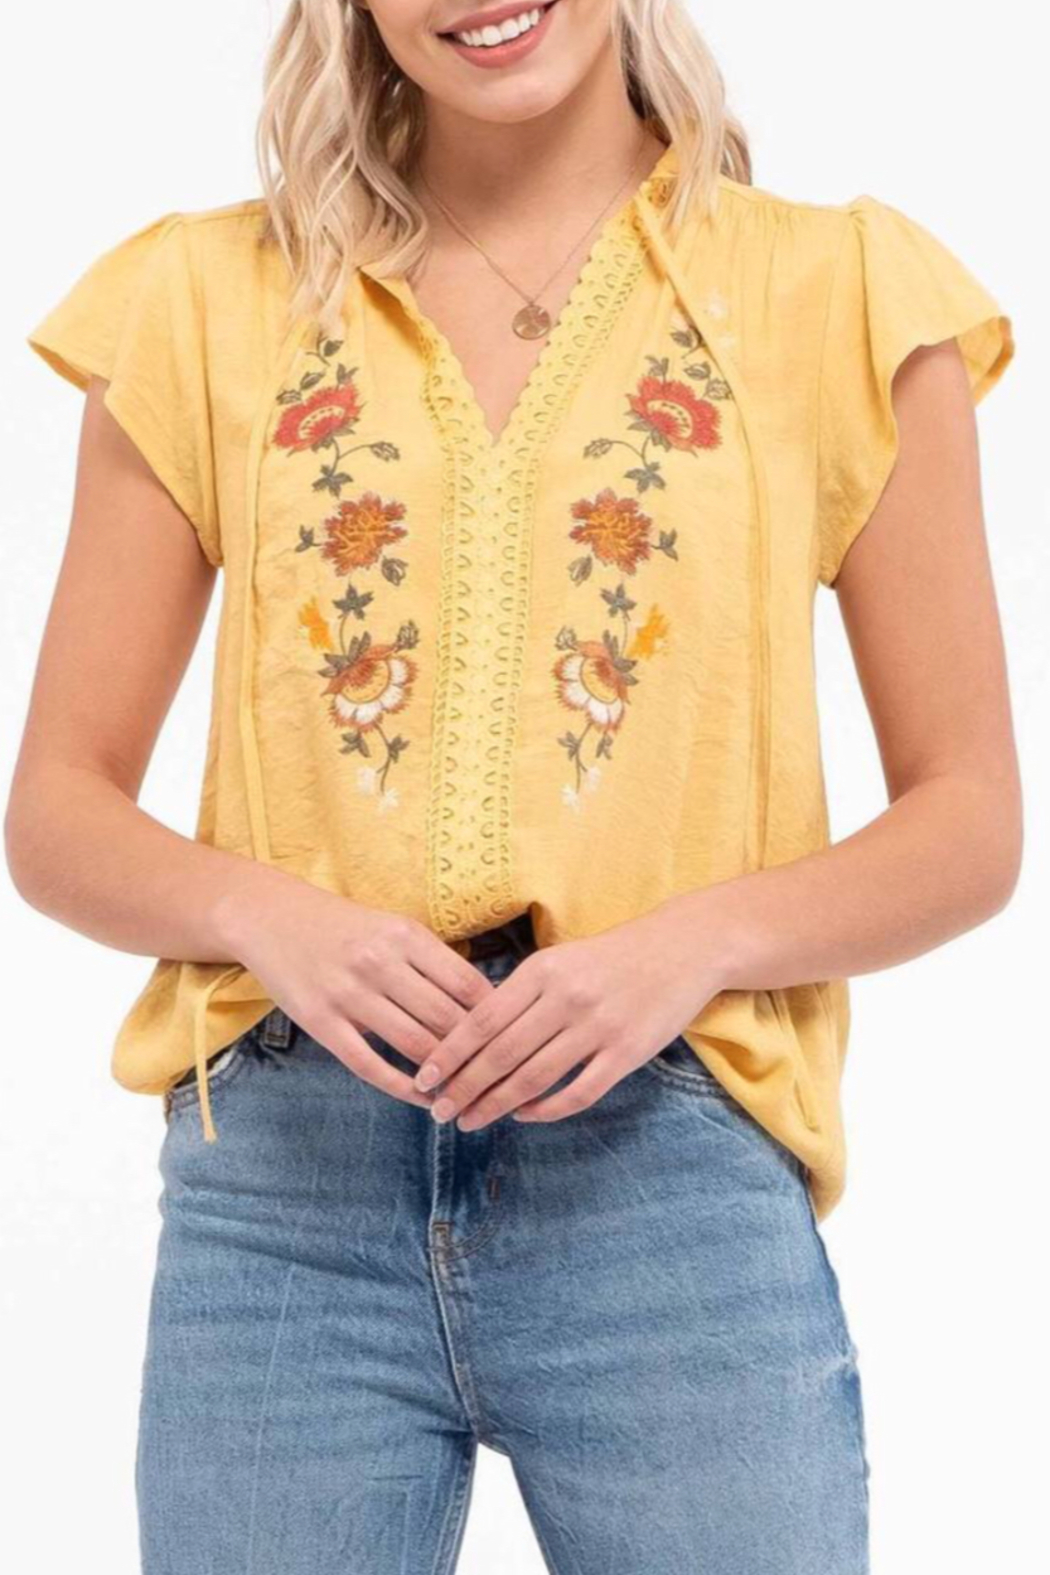 blu Pepper  Embroidered Floral Top - Main Image